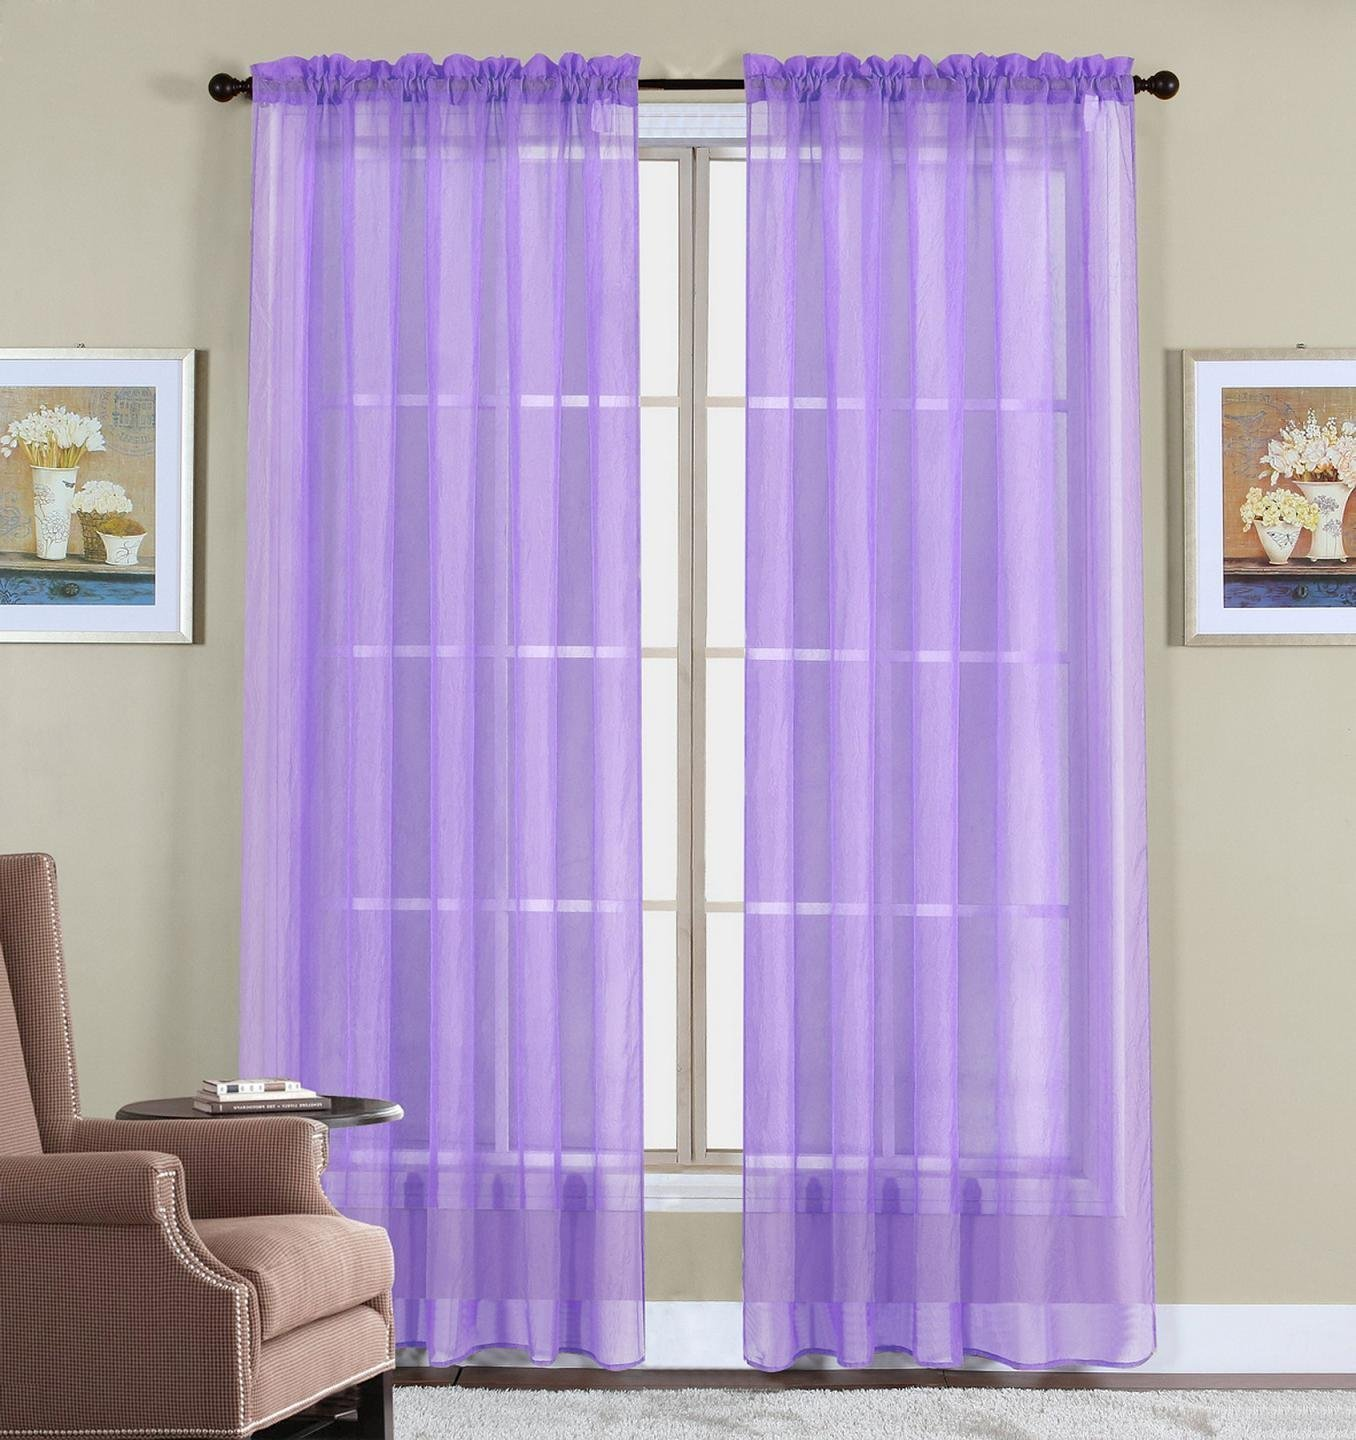 Window Elegance Curtains/drape/panels/treatment, Lavender purple